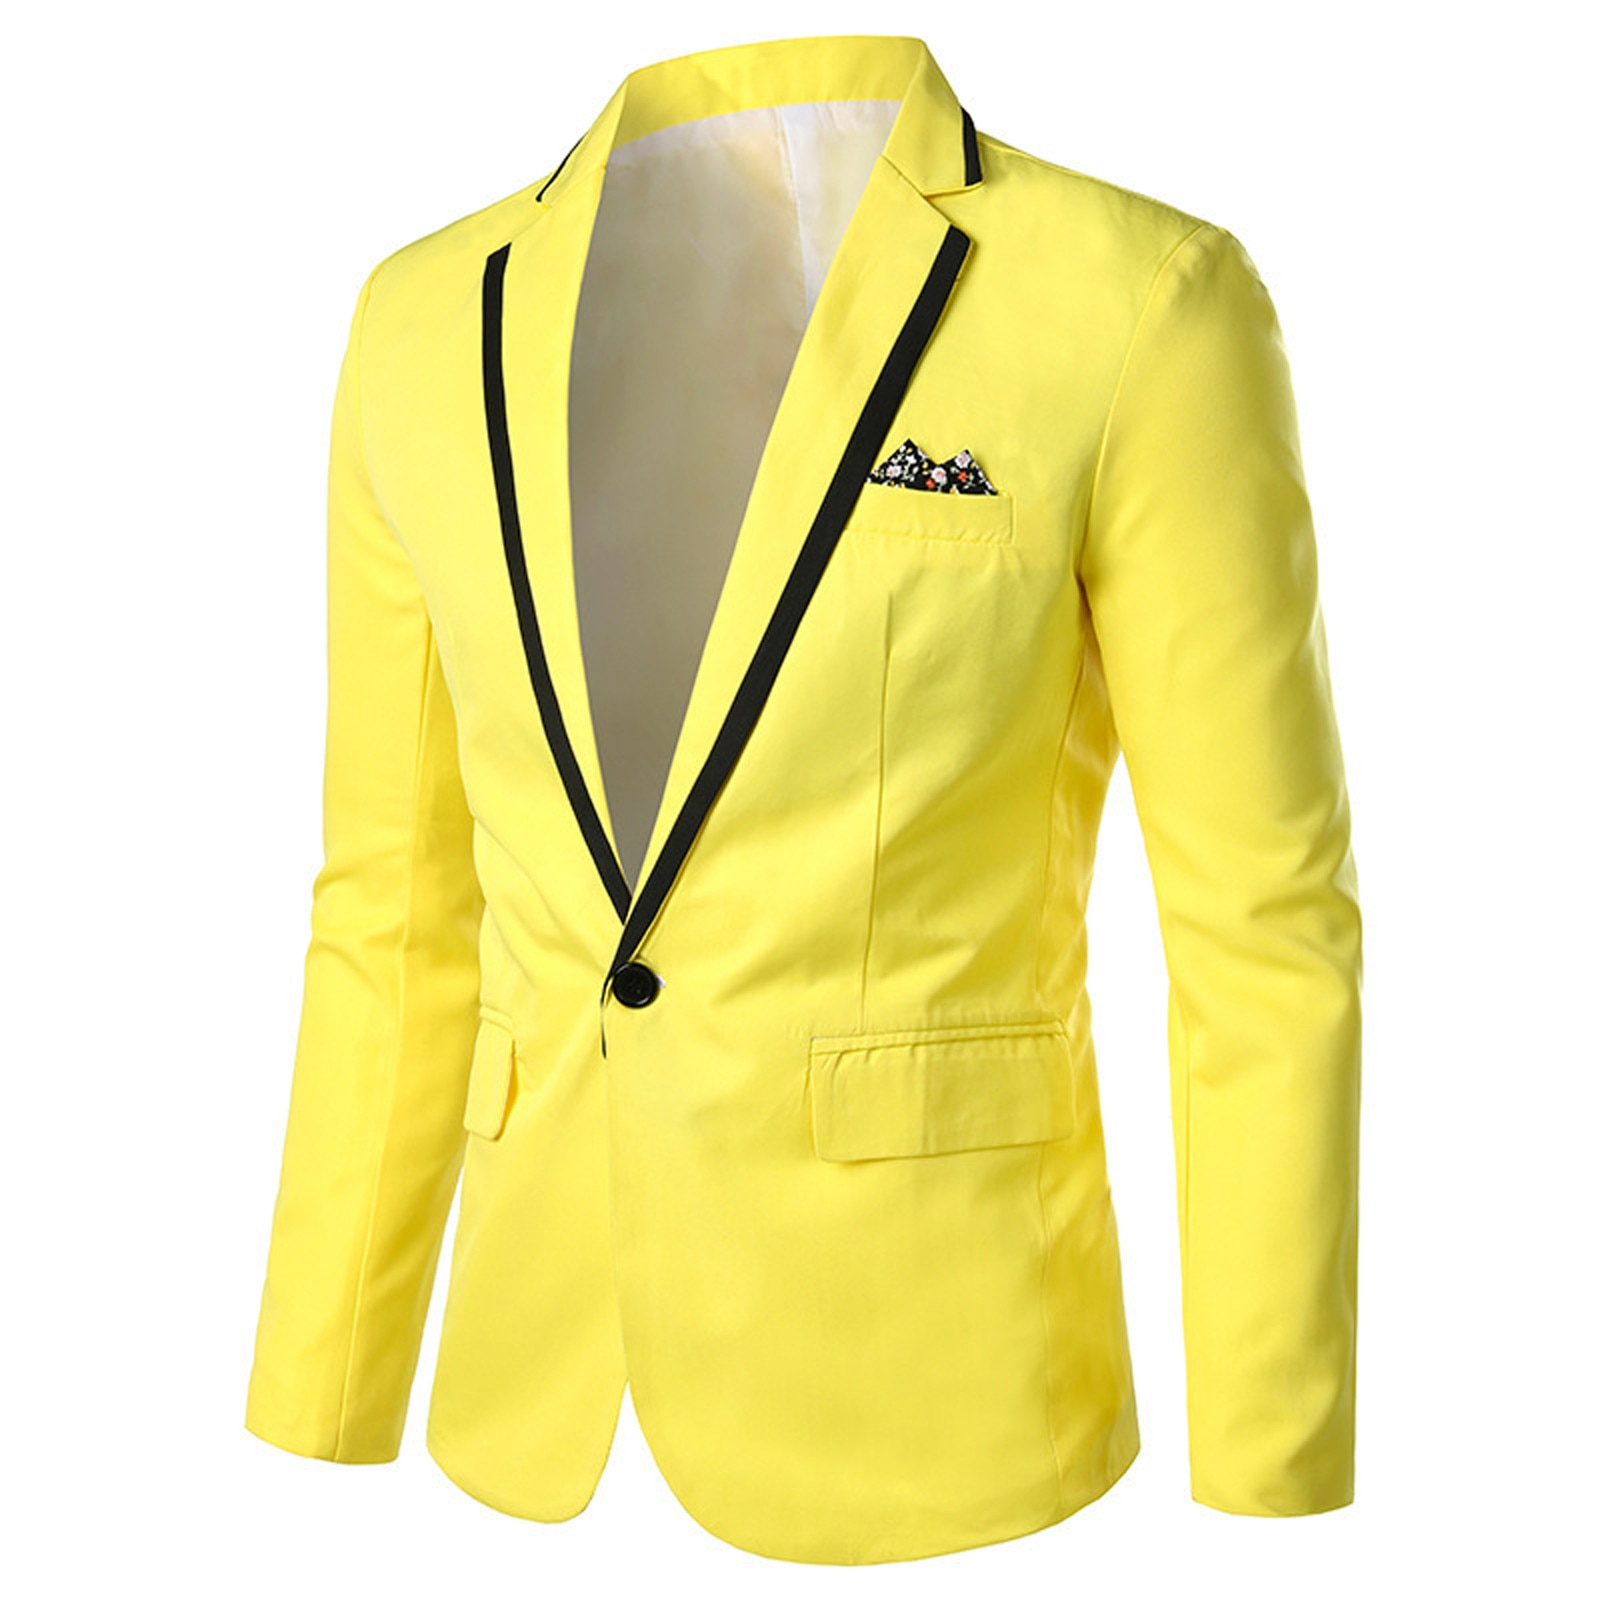 Men's Slim Fit Office Blazer-Jacket Fashion Casual Business Wedding Long Sleeve Buttons Slim Fit Sui